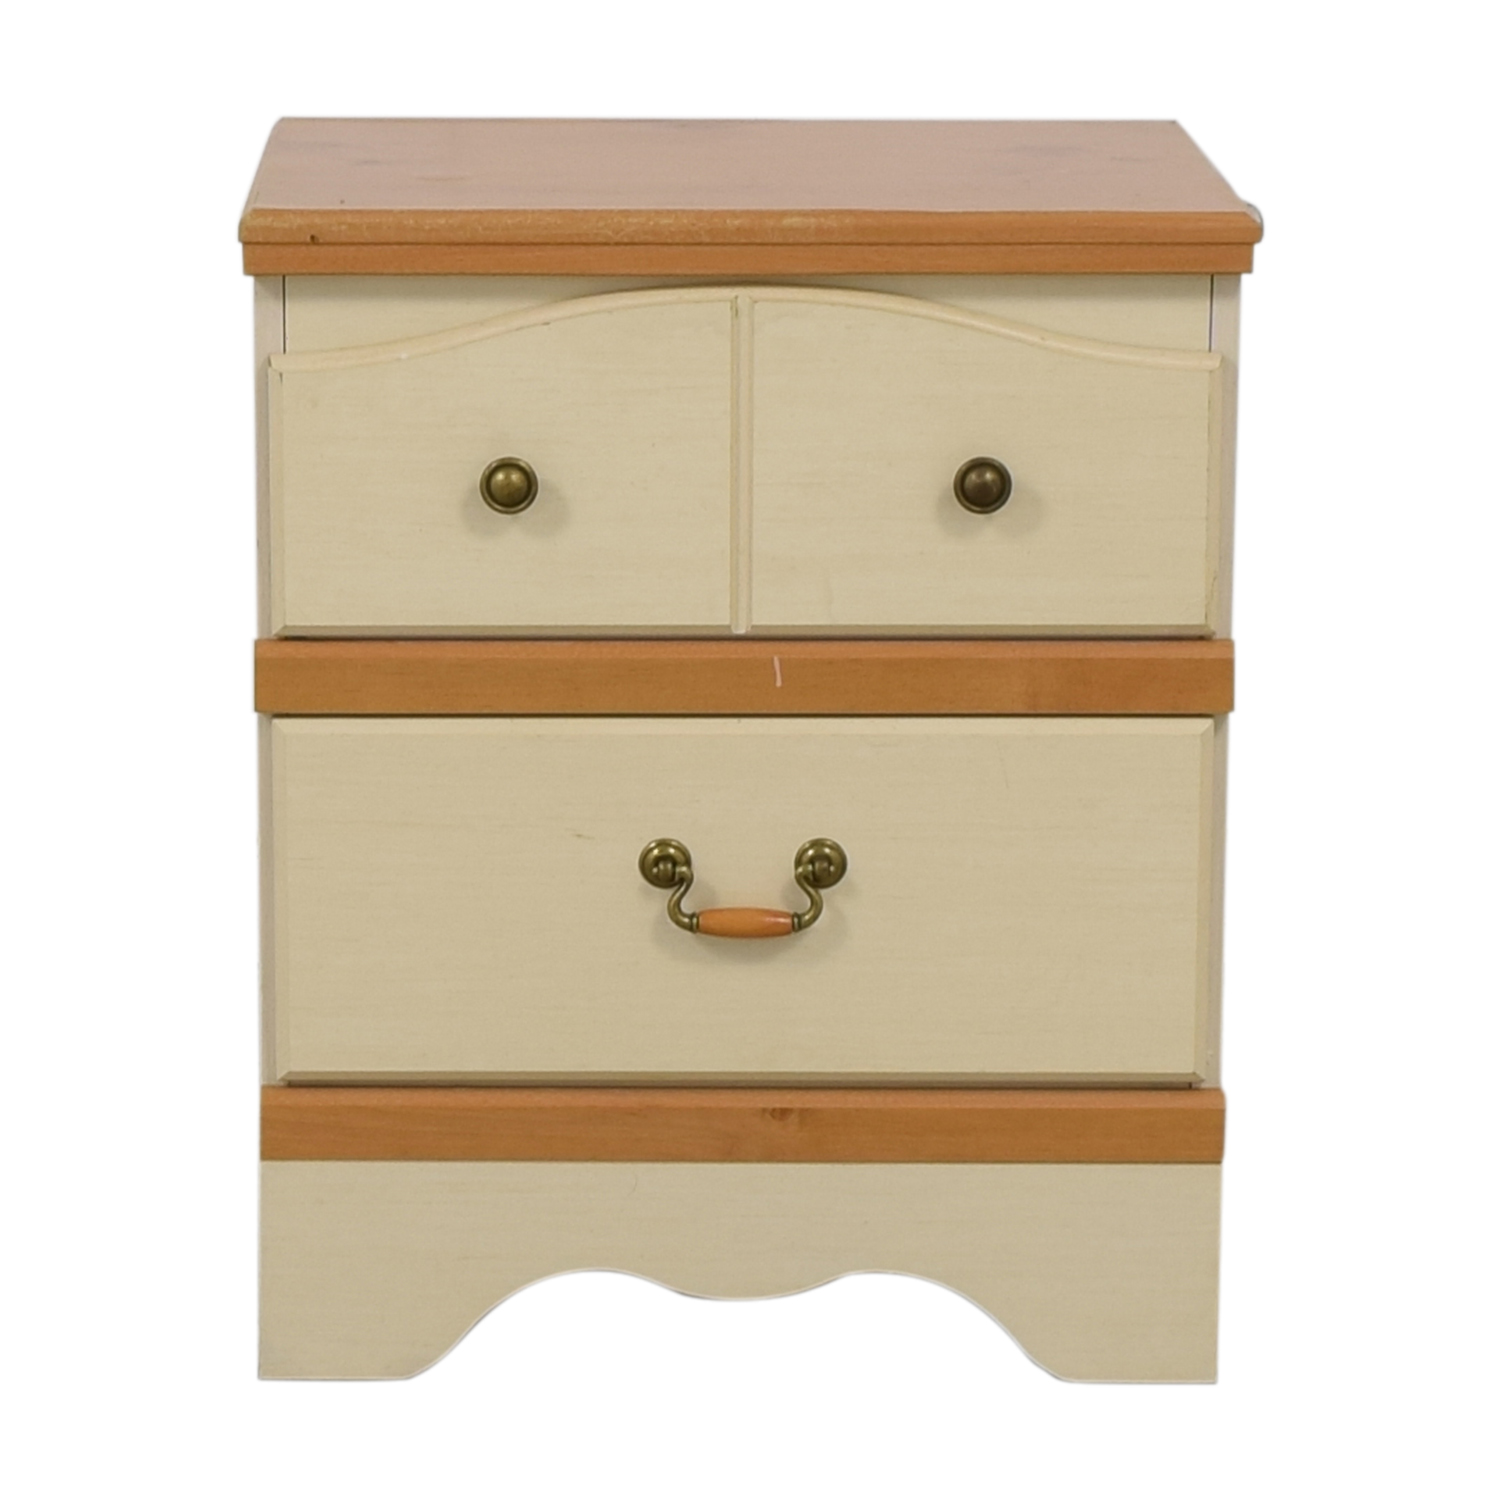 Ashley Furniture Ashley Furniture Night Stand for sale